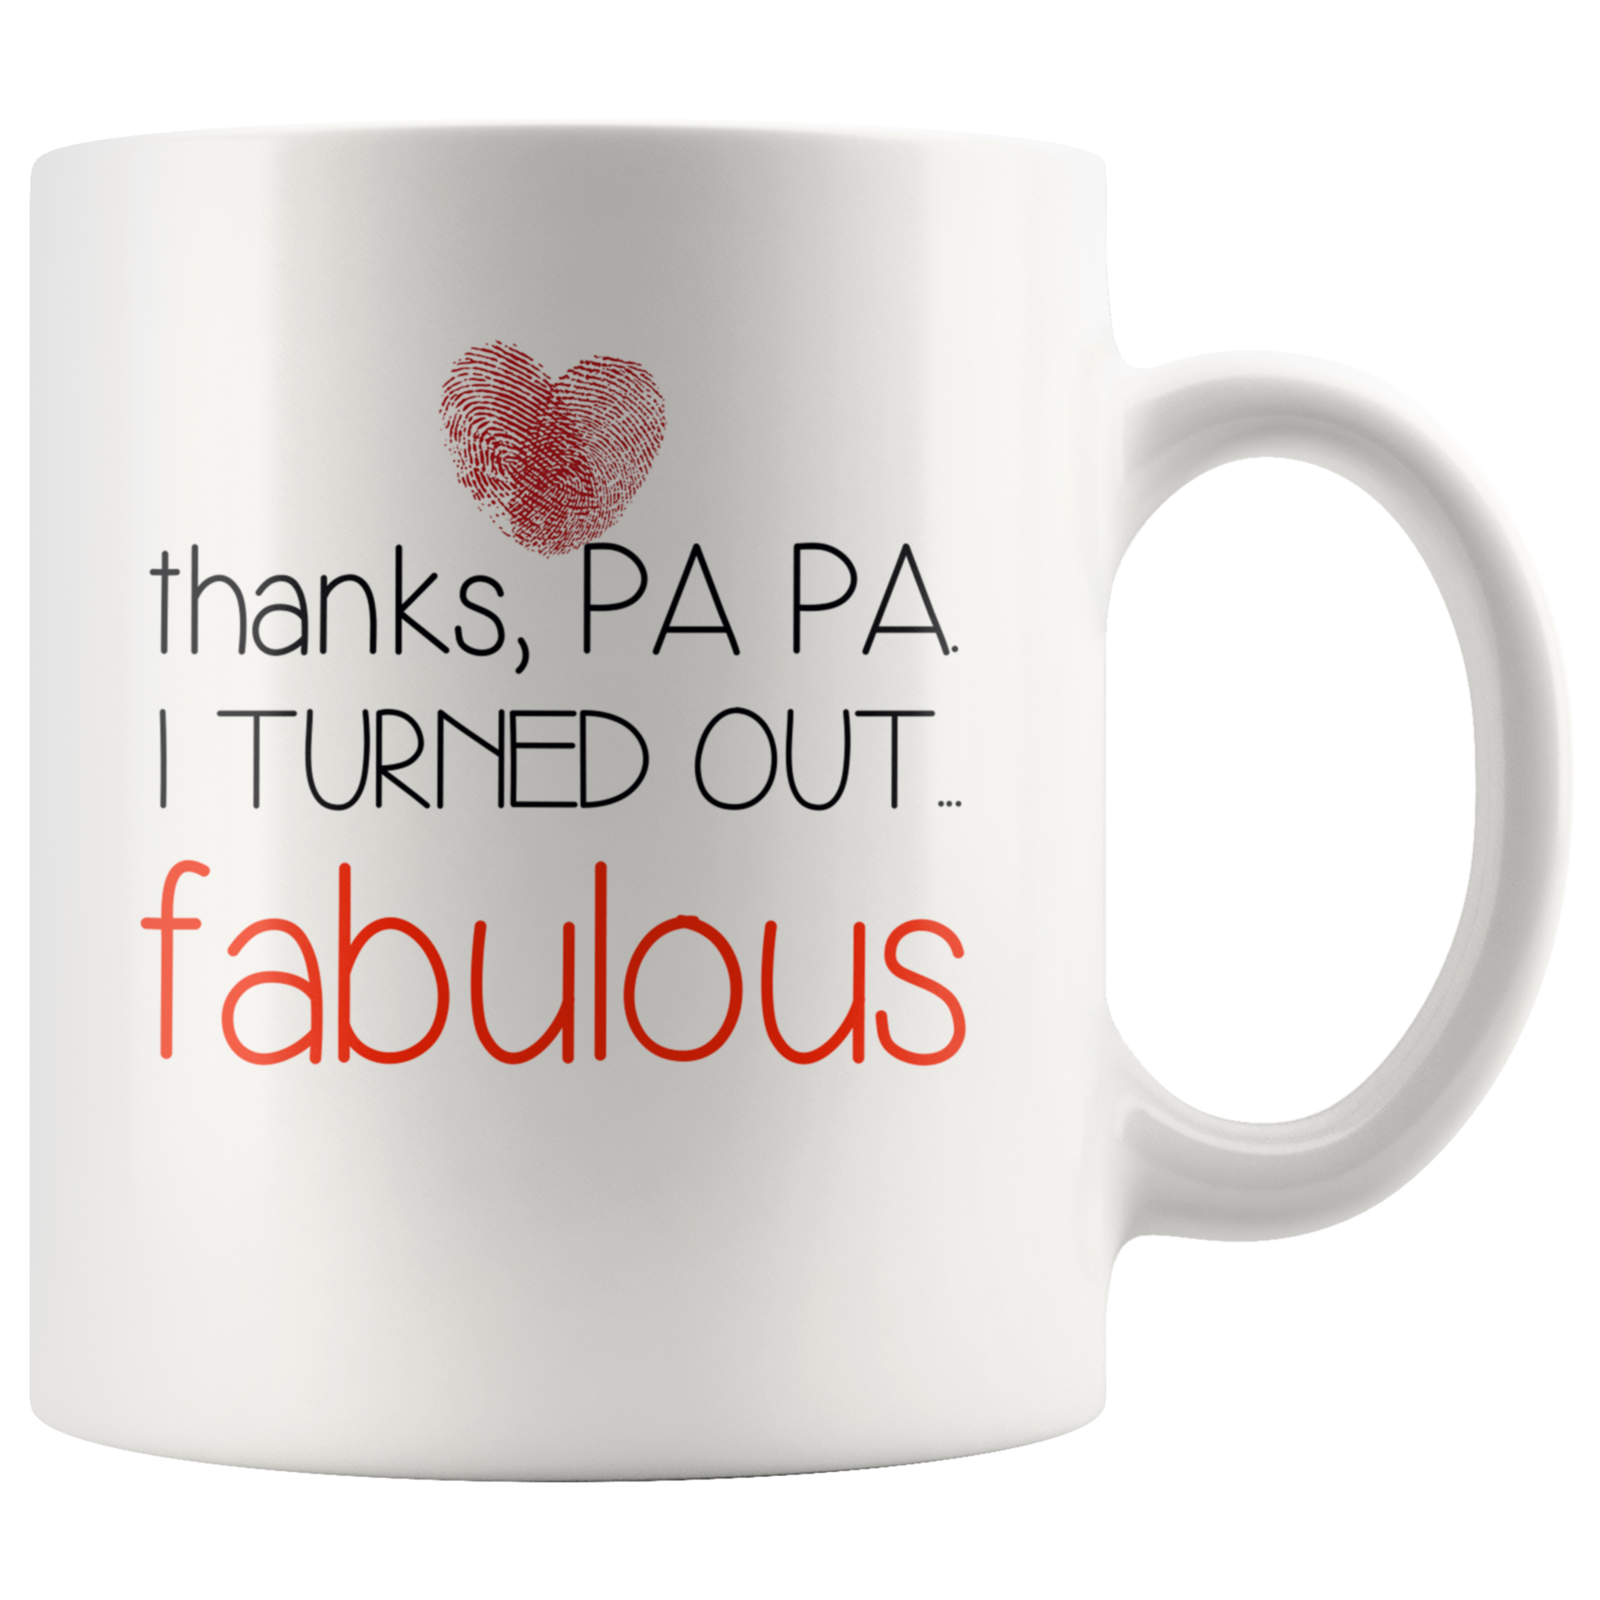 Thanks papa I turned out fabulous coffee mug gift